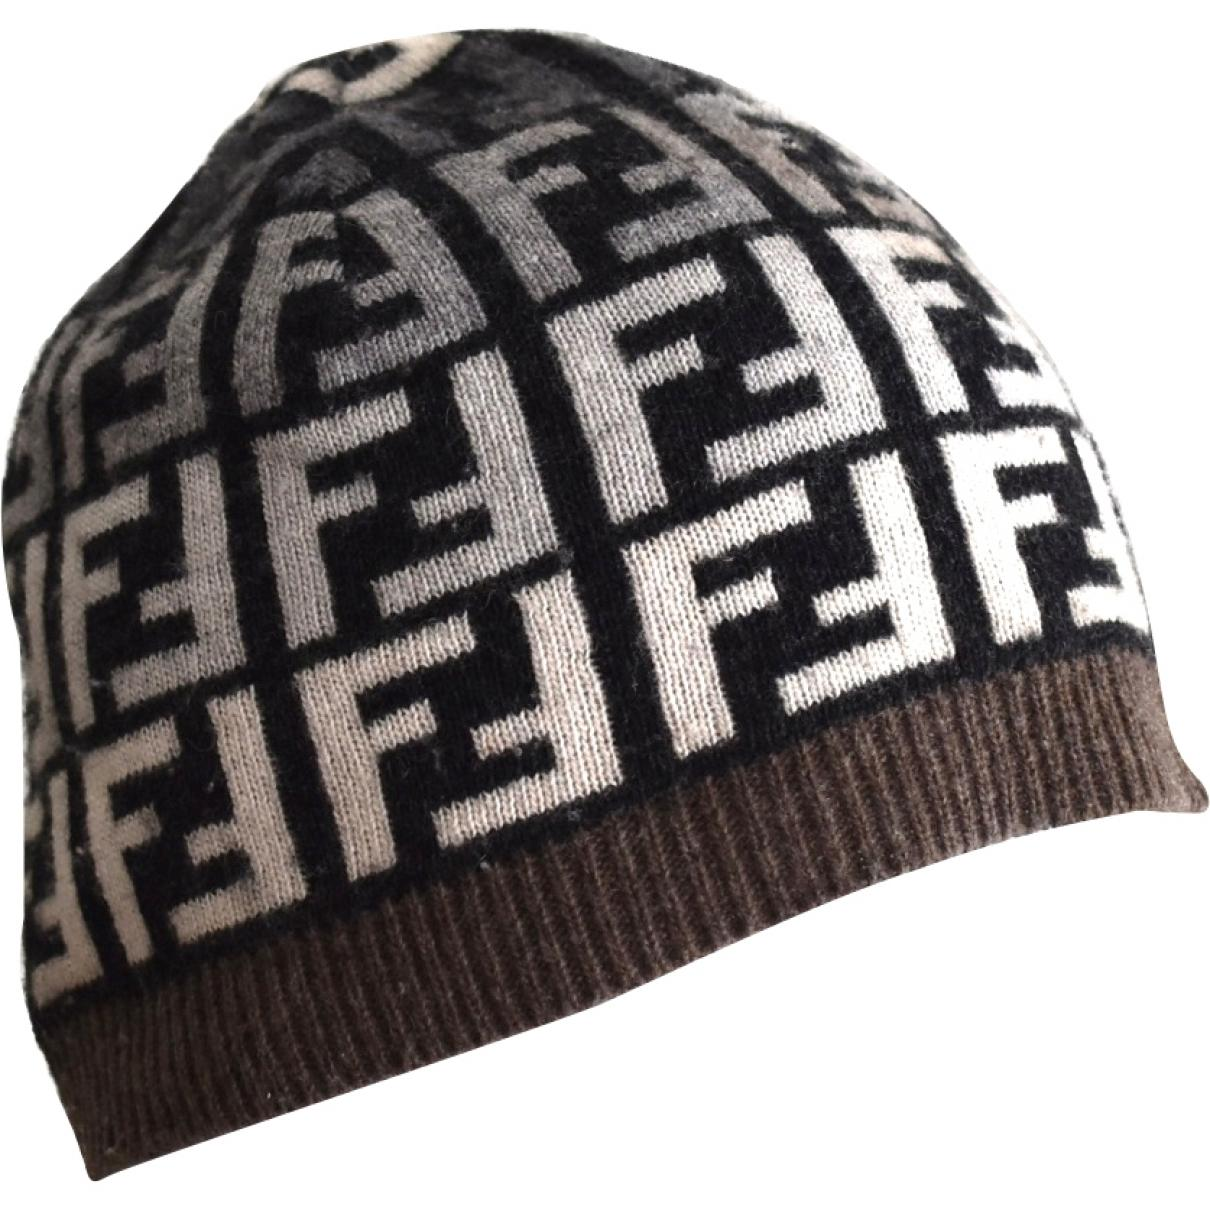 7ba290604e6 Fendi. Women s Pre-owned Vintage Brown Wool Hats.  176 From Vestiaire  Collective